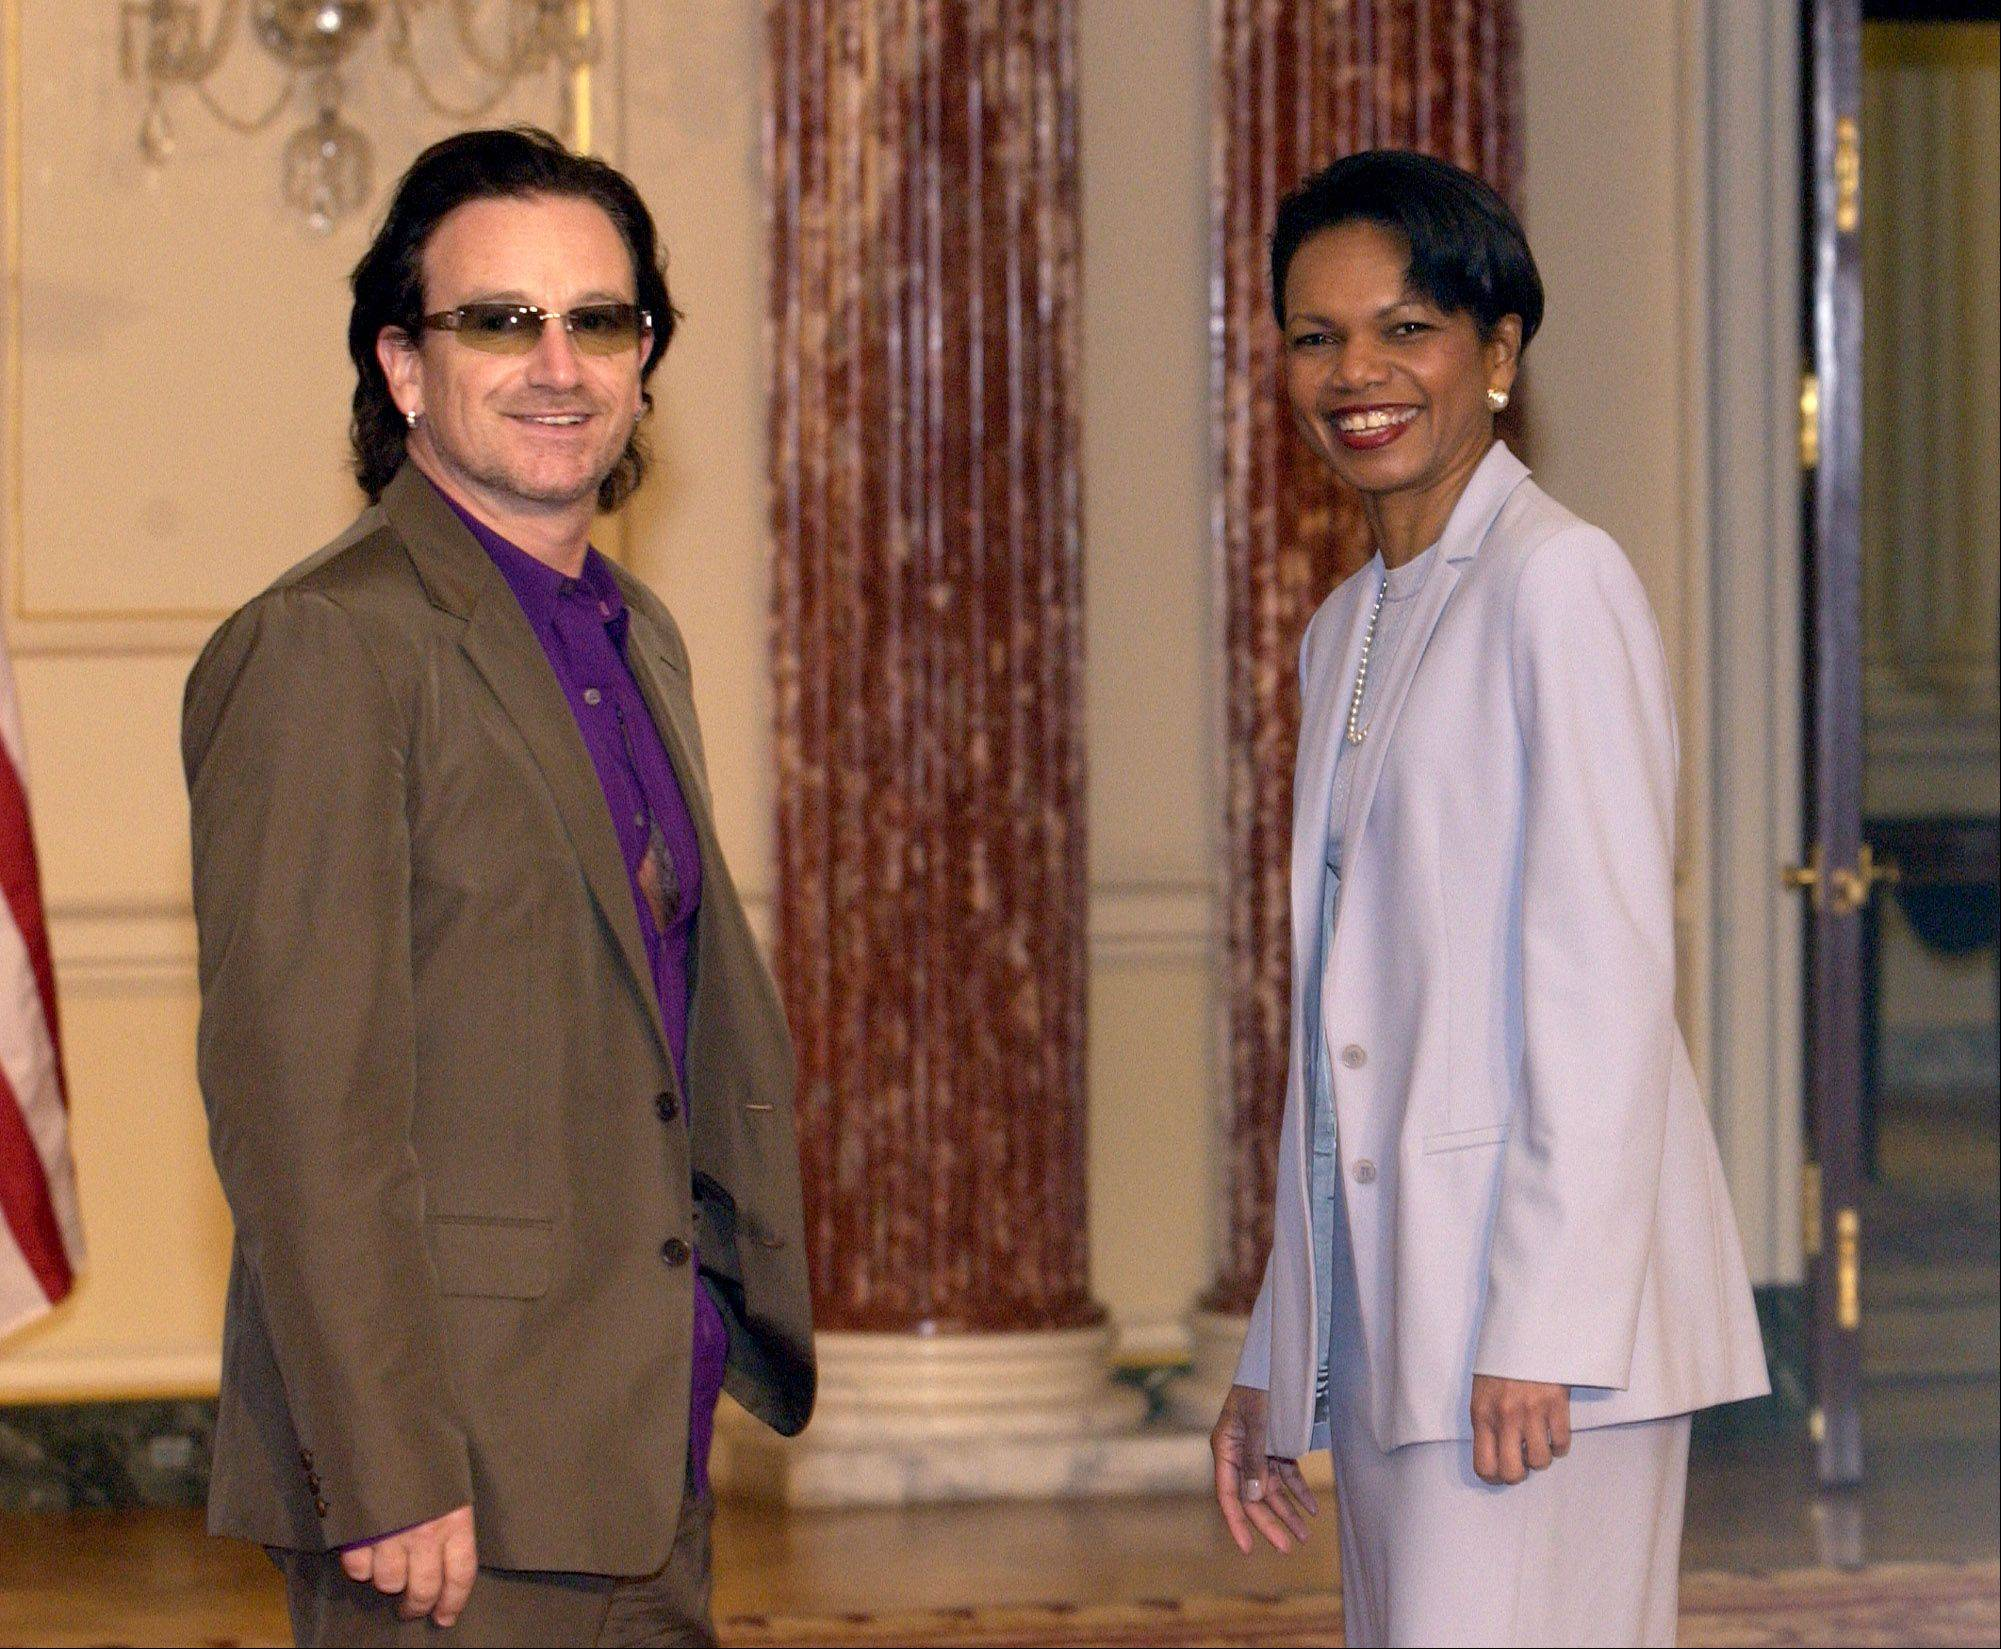 Secretary of State Condoleezza Rice, right, poses for photographers with U2 lead singer Bono prior to their lunch at the State Department in Washington, Wednesday, May 25, 2005.